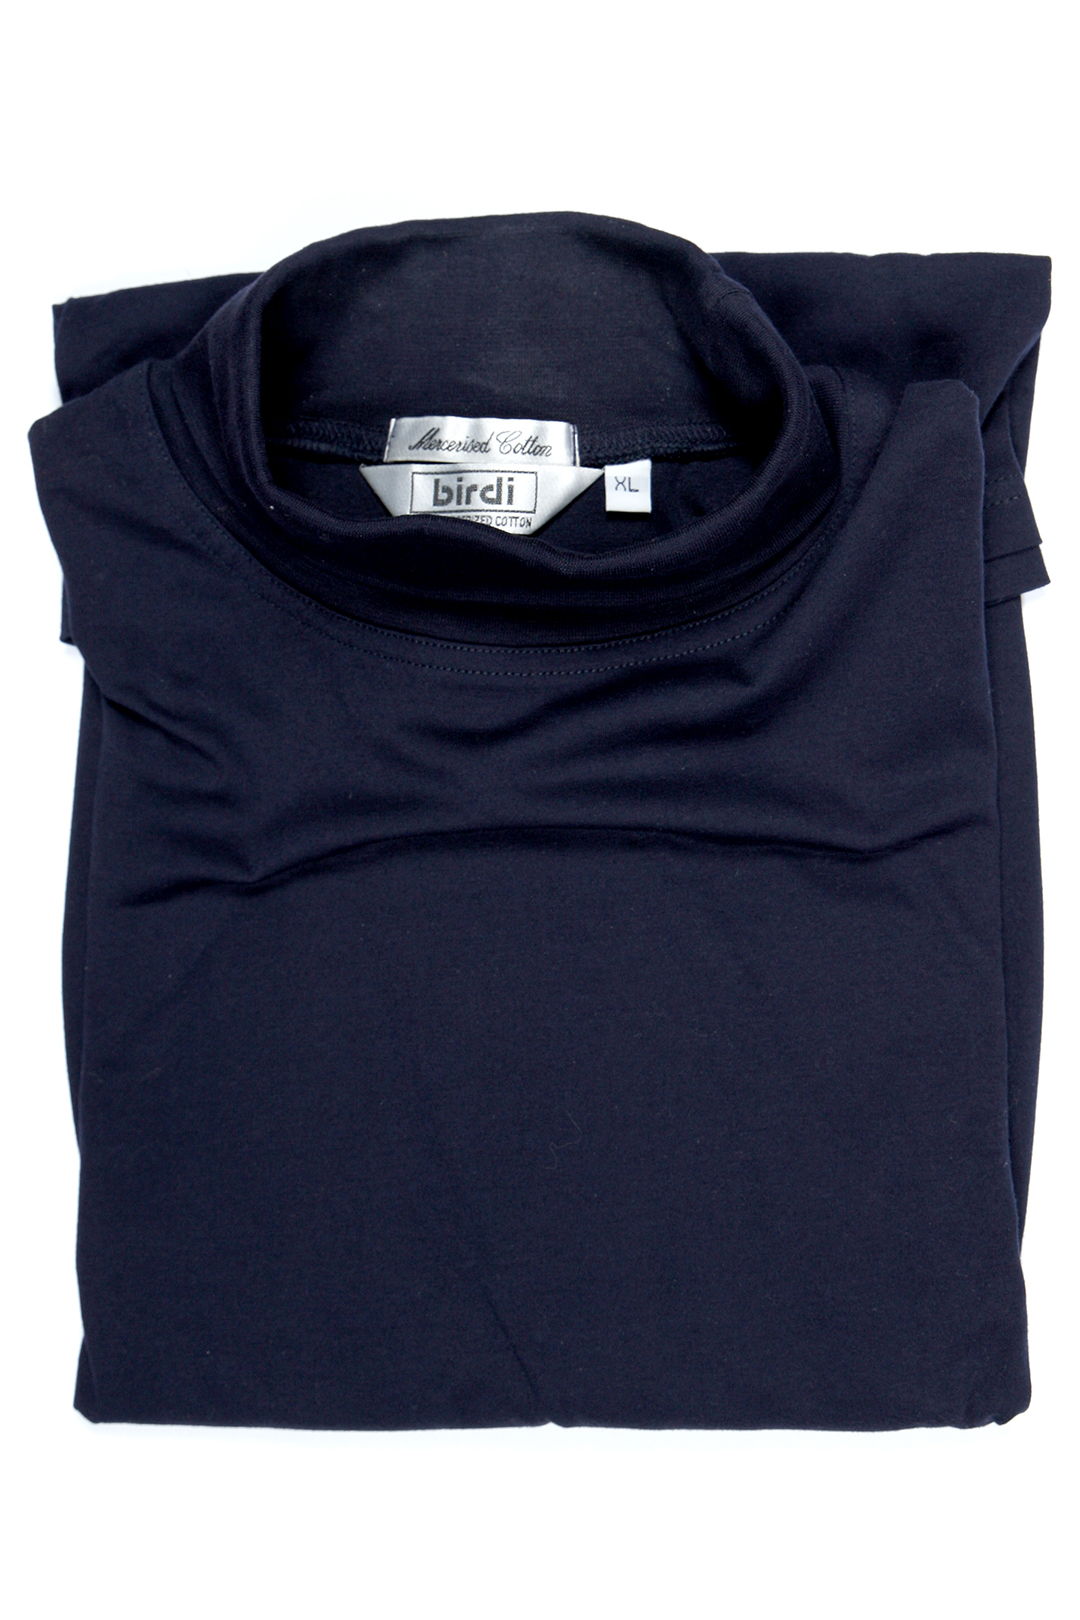 solid-navy-double-mercerized-polo-neck